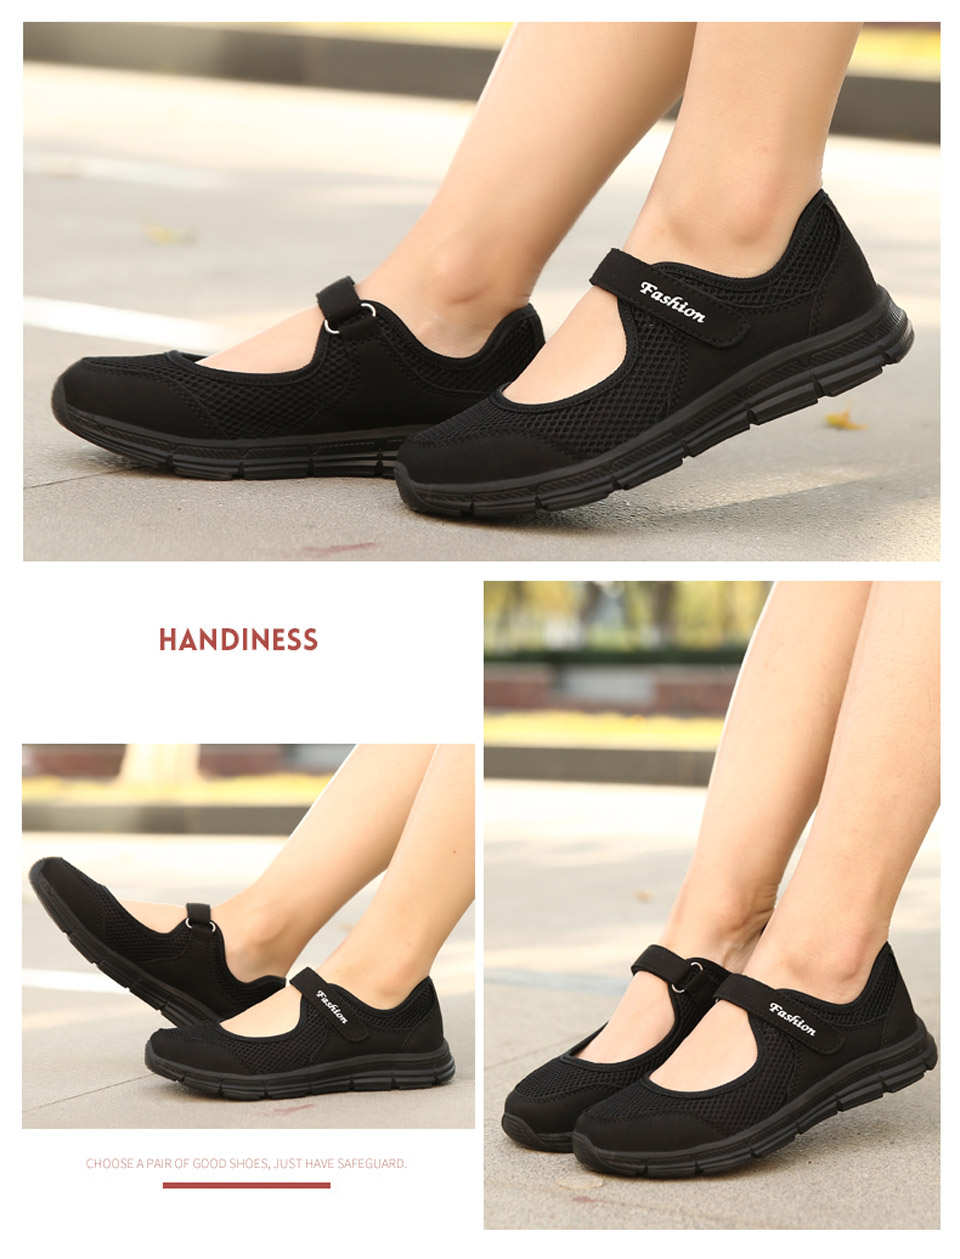 EOFK Casual Flat Comfortable Breathable Shoes for Women